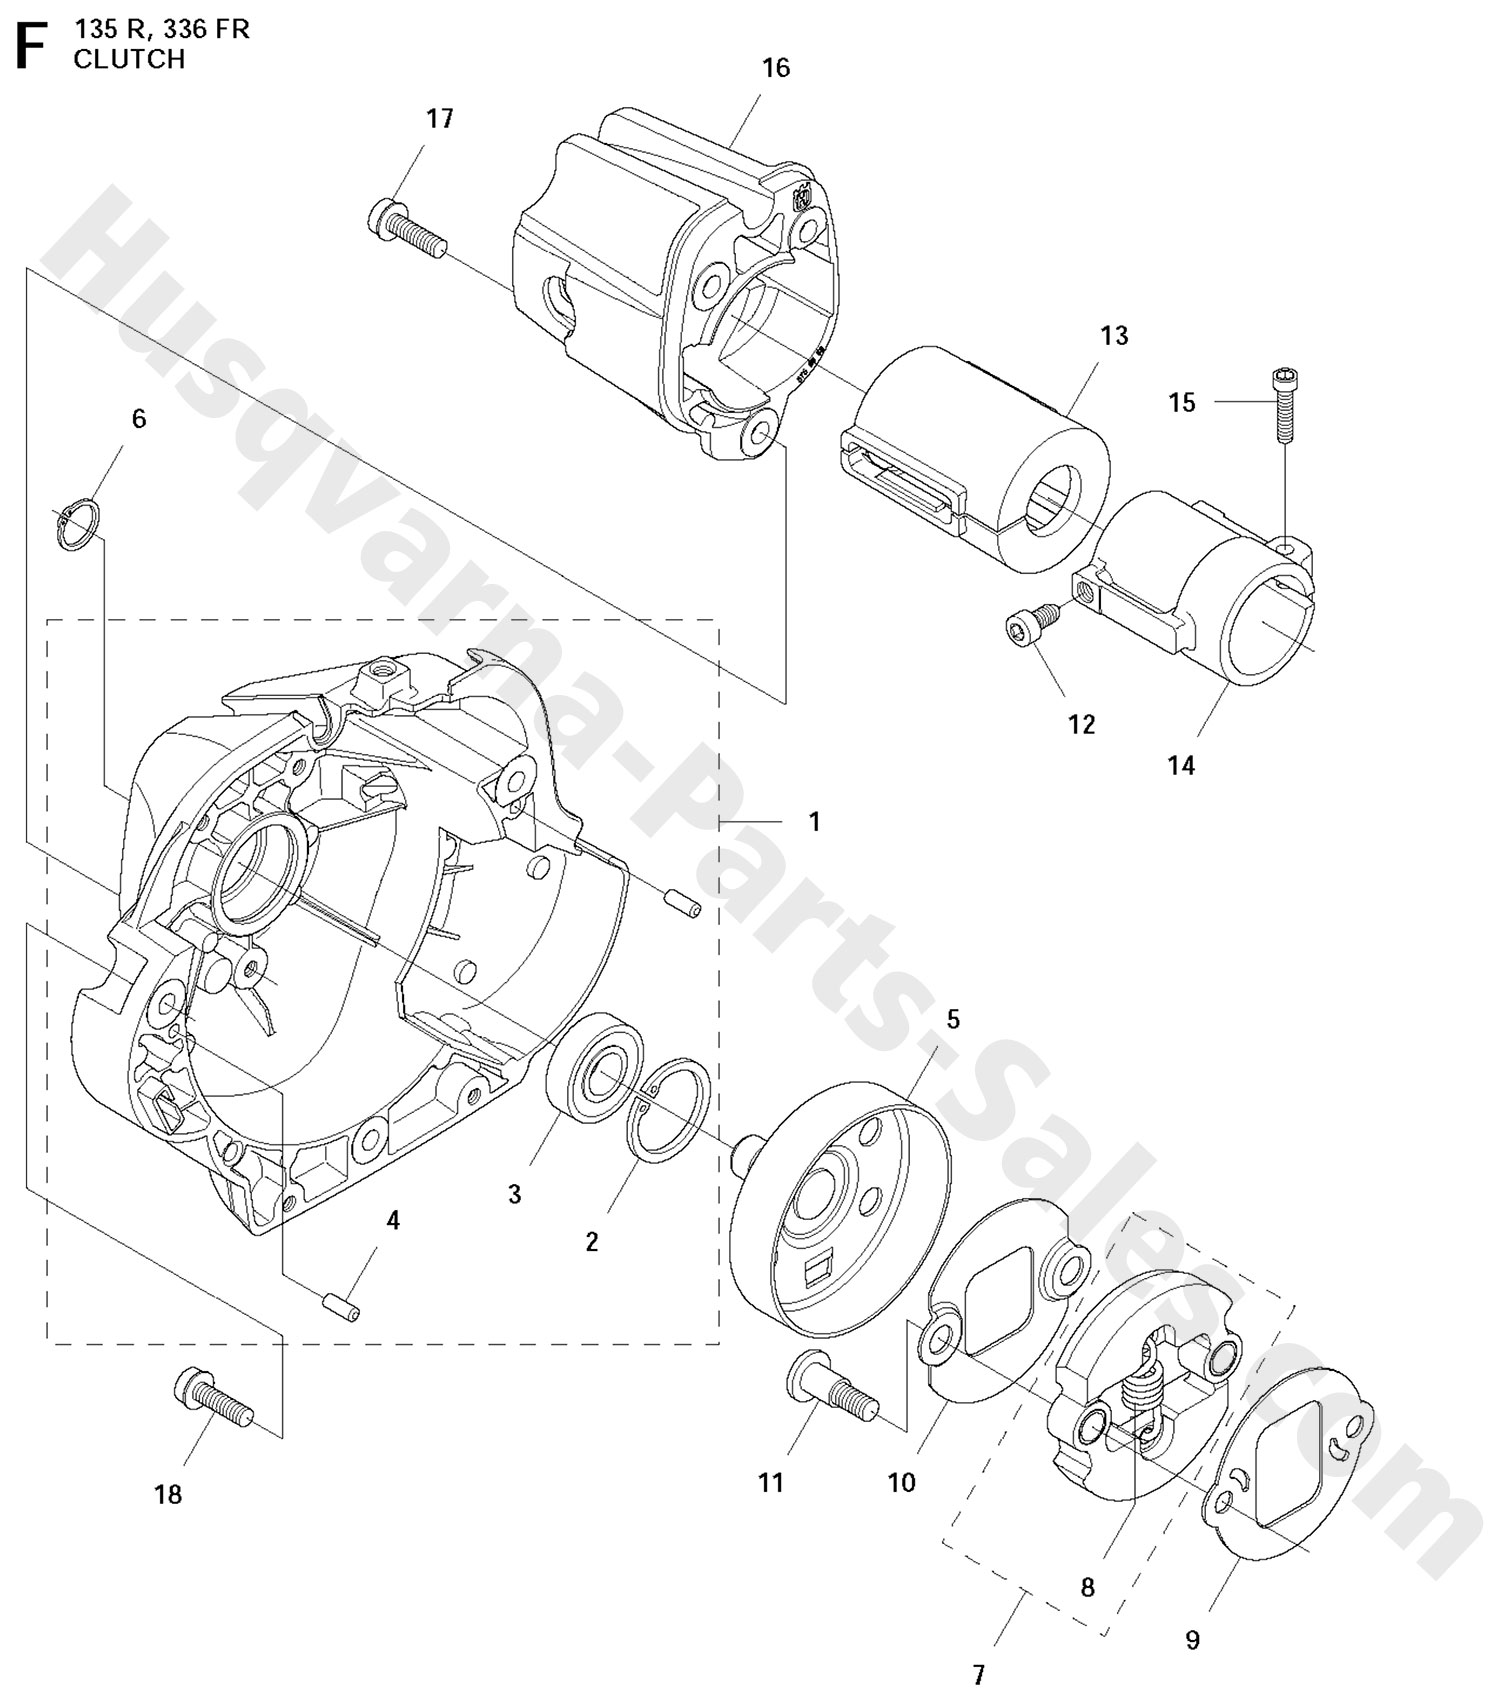 336fr Husqvarna Brushcutter Clutch Parts